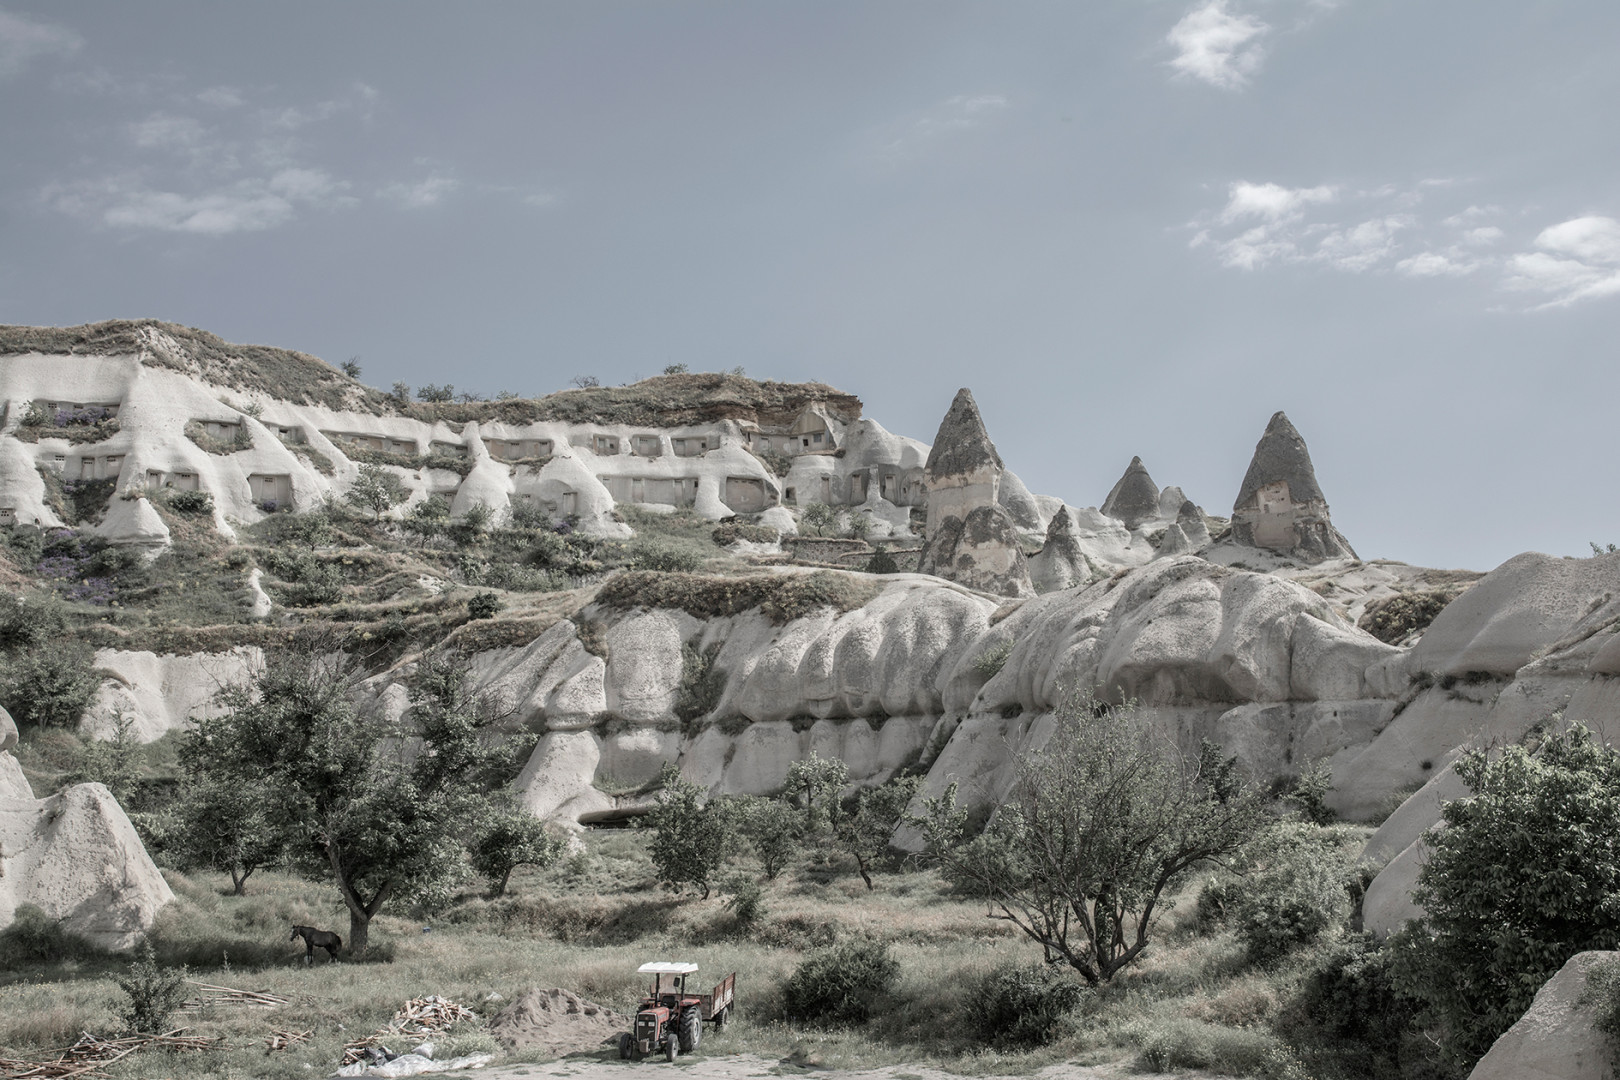 A red tractor and a horse in Goreme Turkey